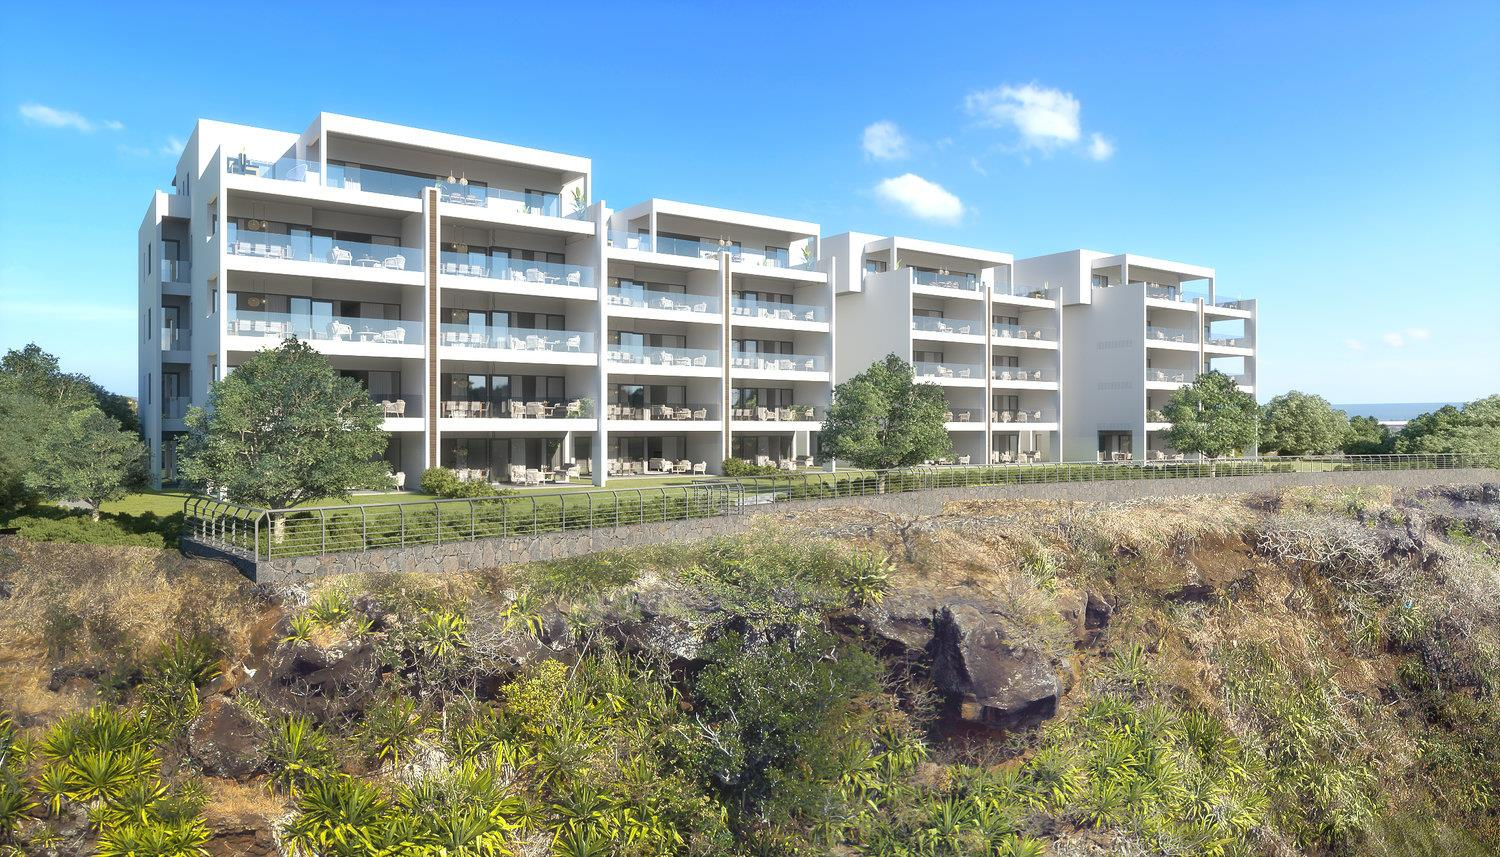 3 Bedroom Apartment For Sale in Beau Bassin